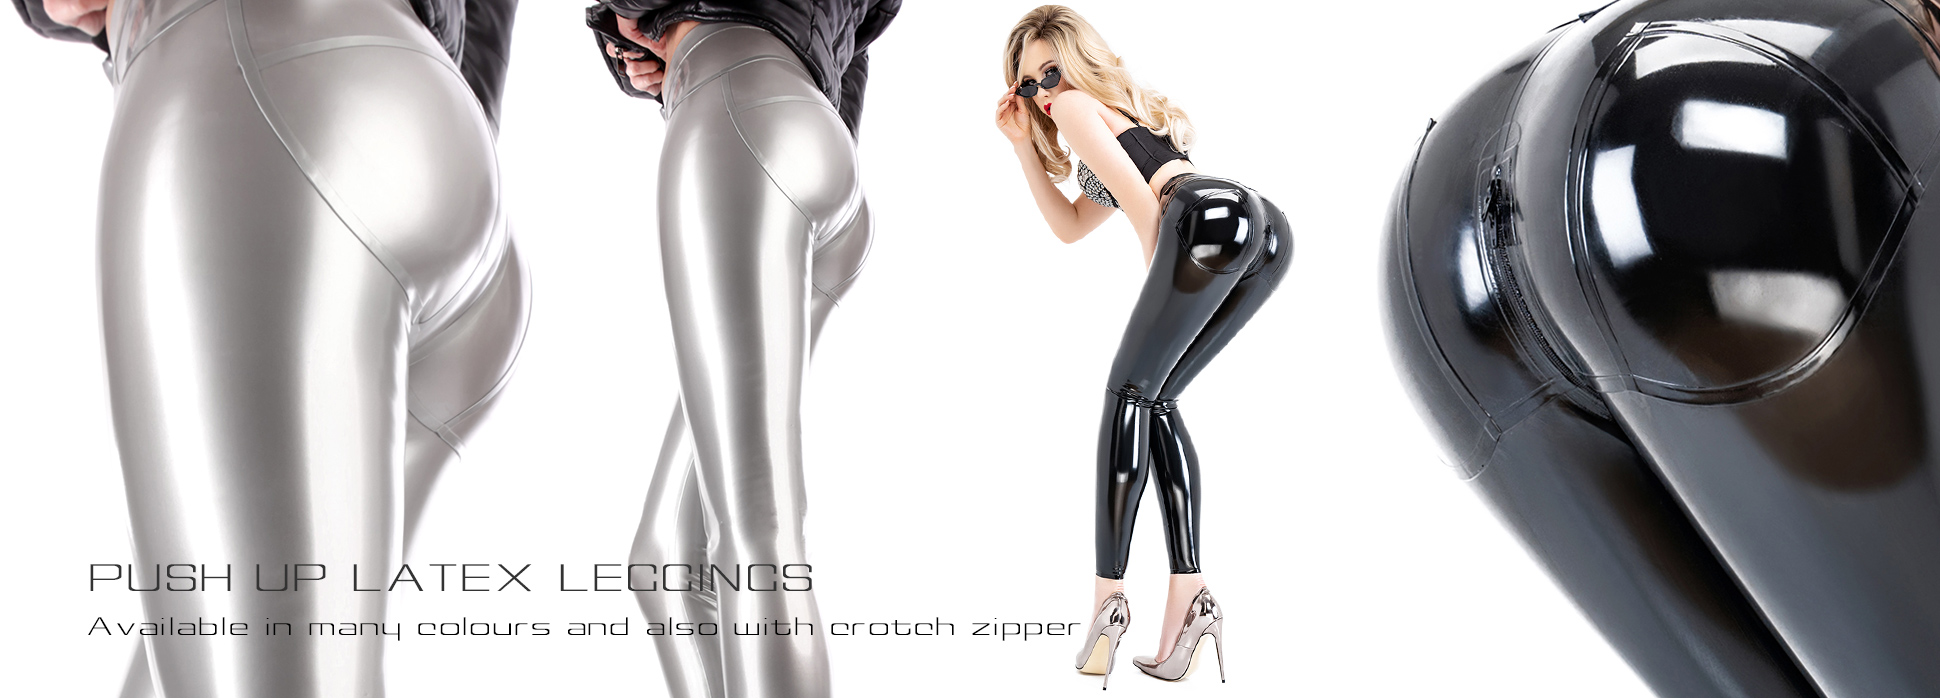 Latex Leggings with push up effect in black and shiny silver